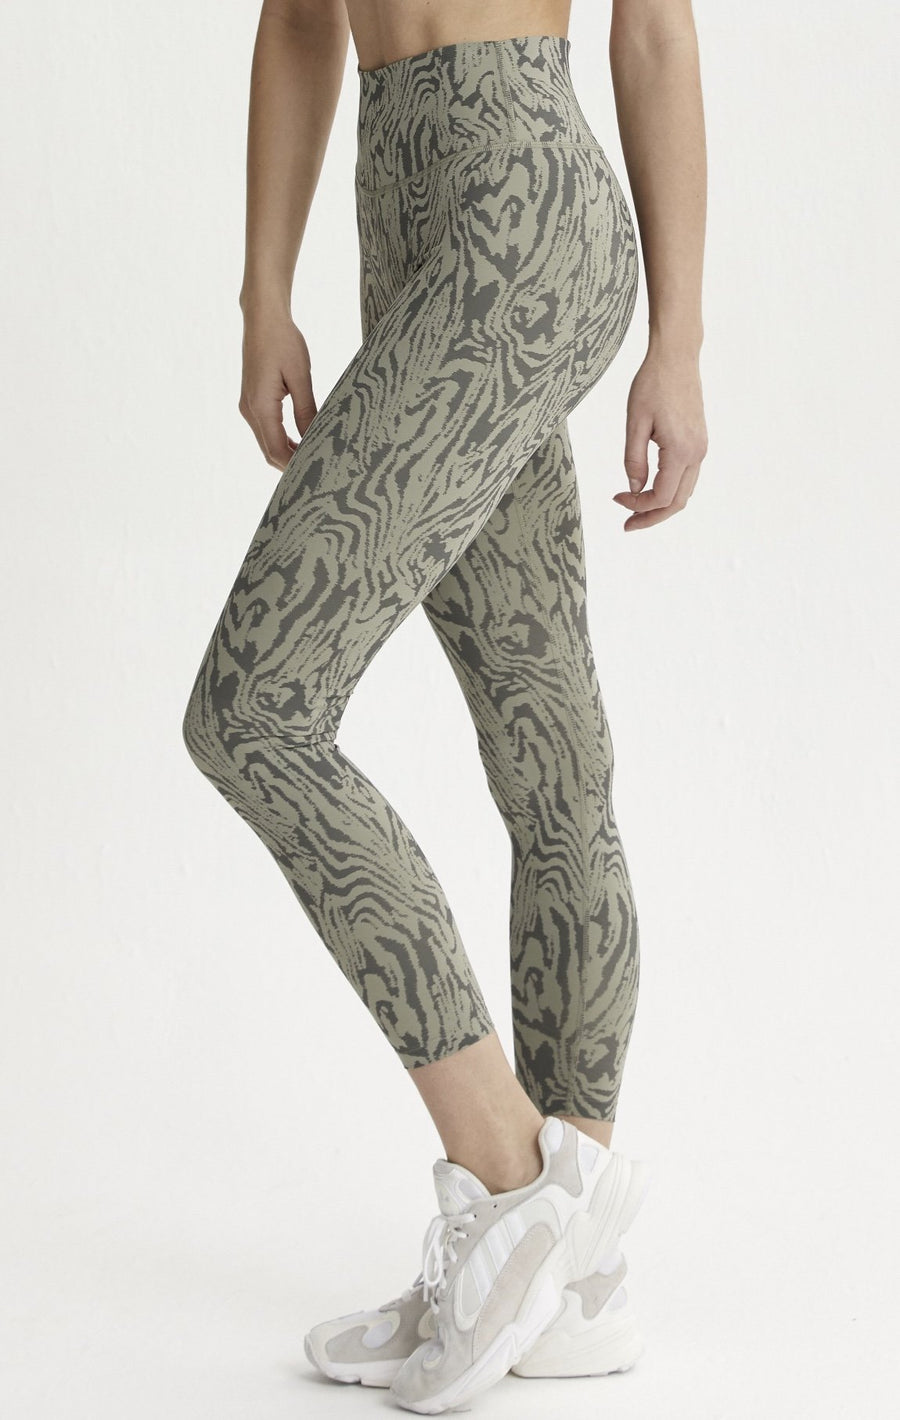 LEGGING LUNA DISTORTED GRAIN